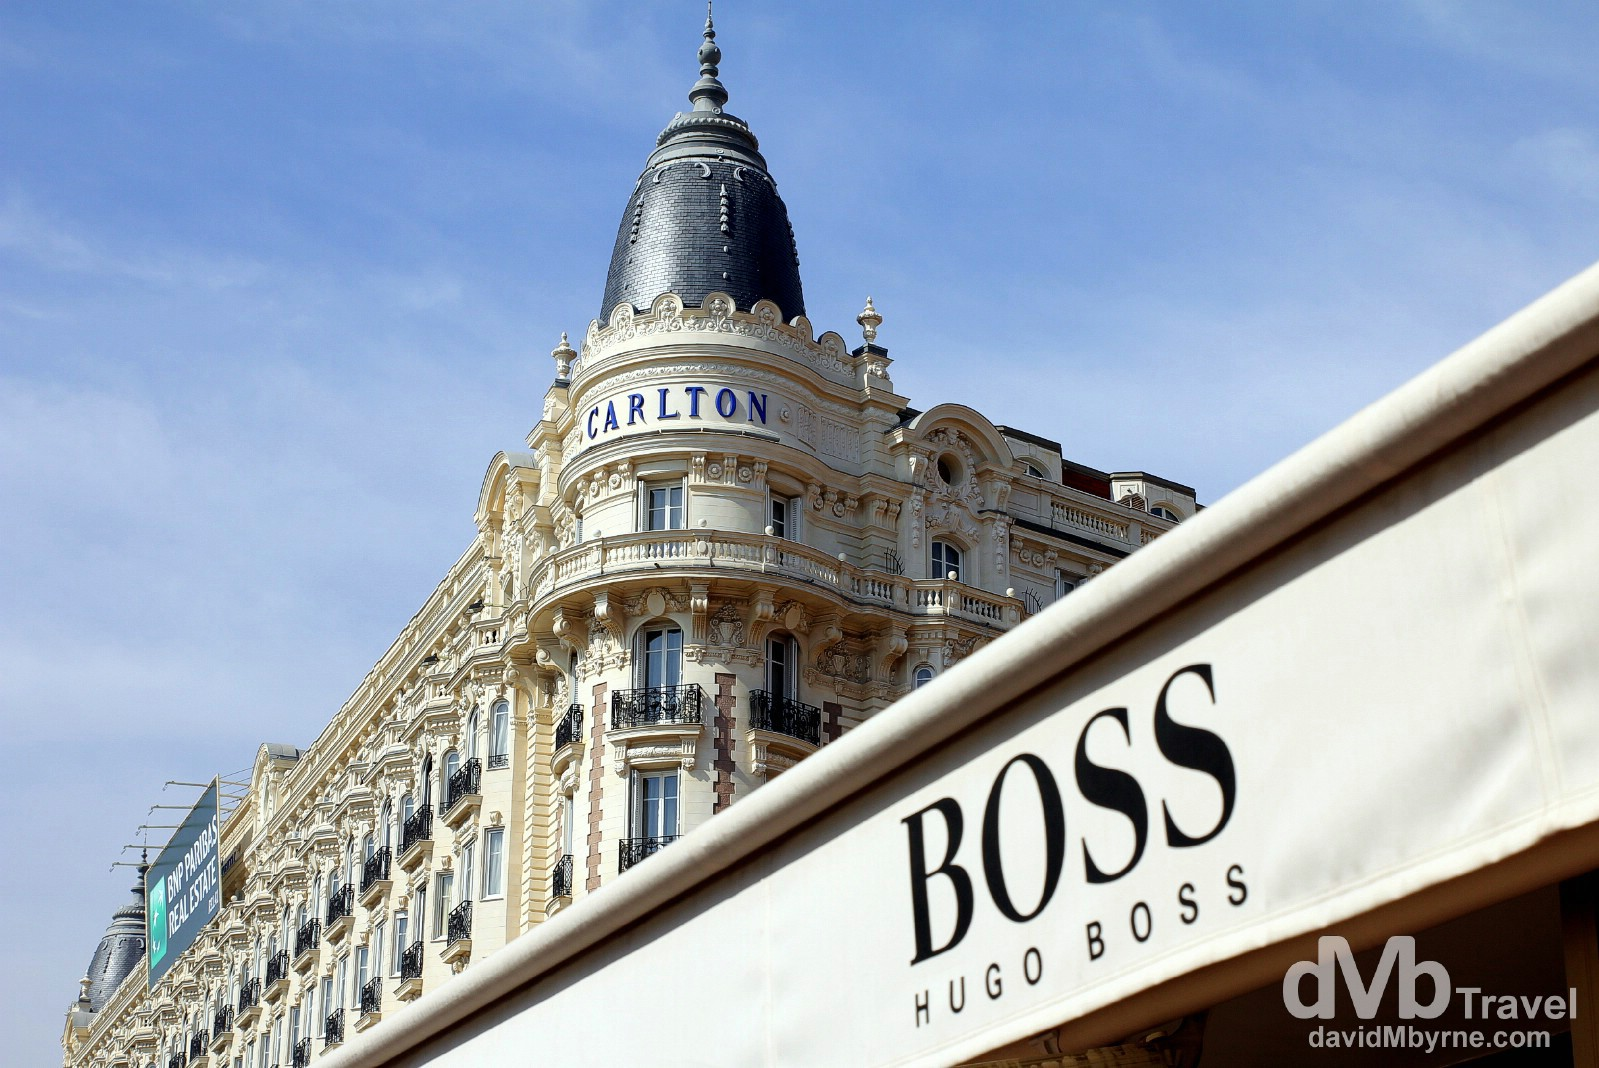 The iconic Carlton Hotel & a Hugo Boss store fronting the waterfront promenade bd de la Croisette in Cannes, Côte d'Azur, France. March 15th, 2014.